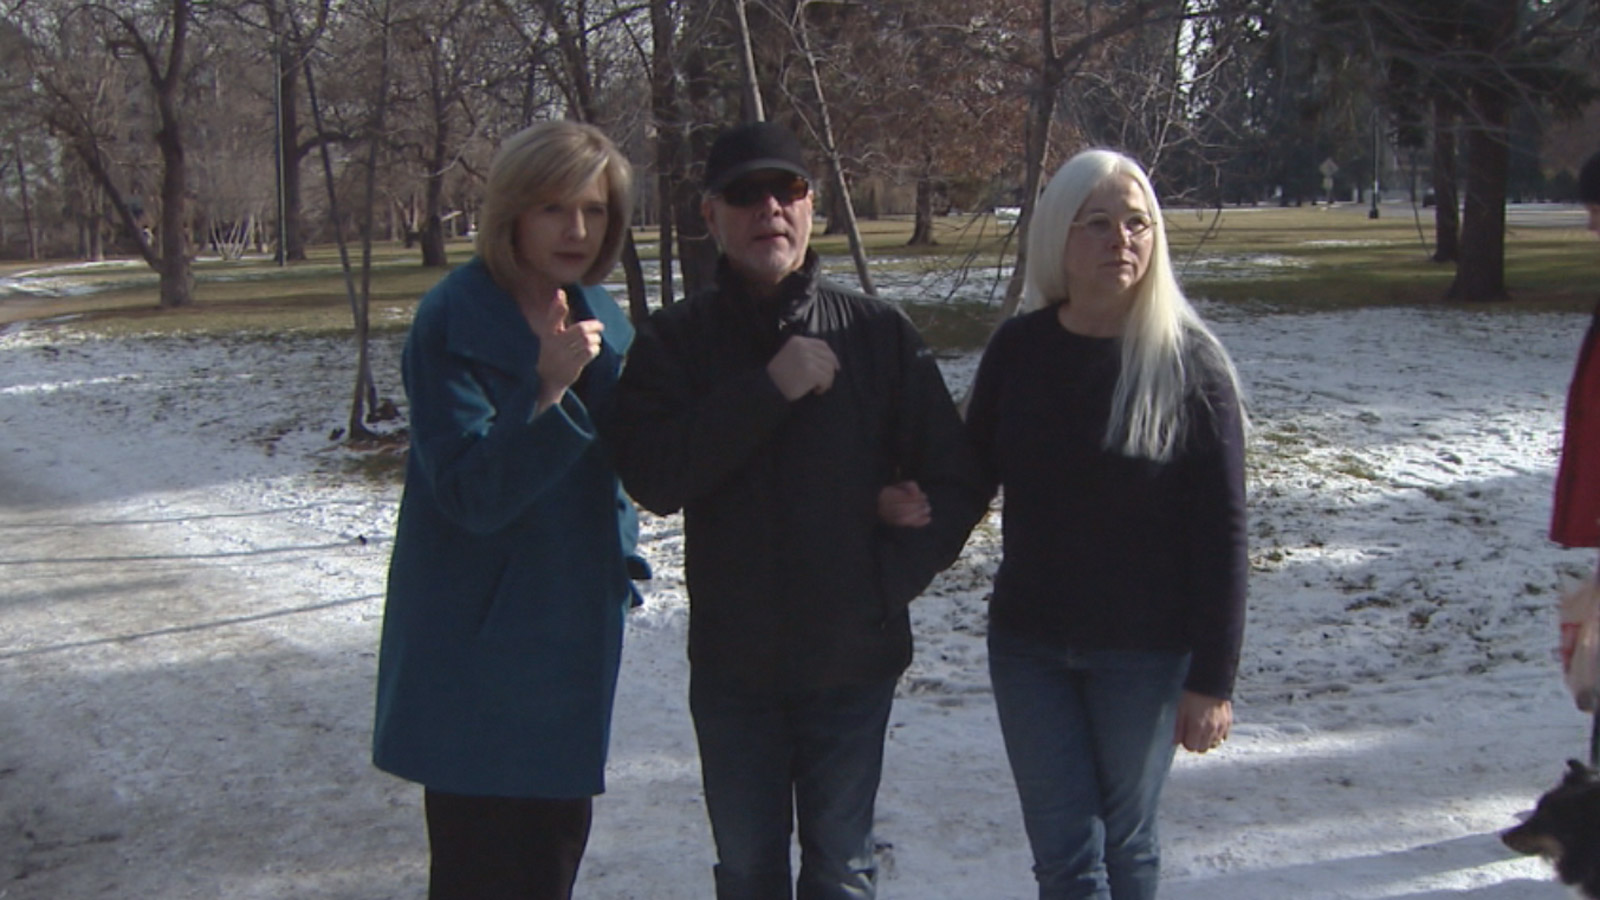 Phil and Pam Lawson show CBS4's Kathy Walsh where Phil collapsed while jogging (credit: CBS)